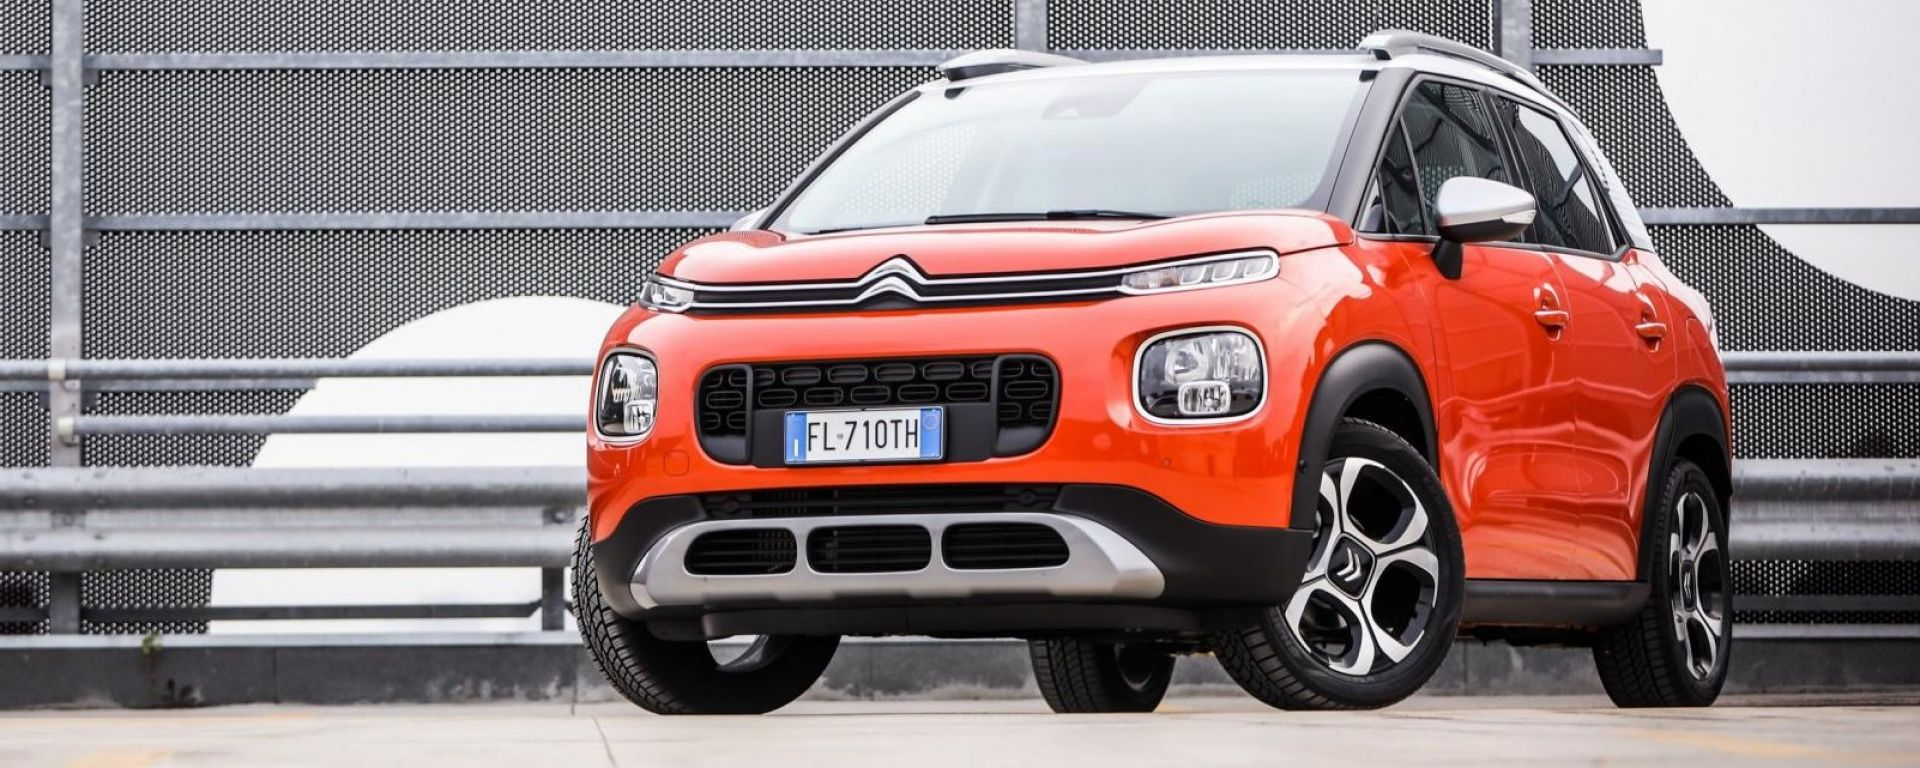 citroen c3 aircross prezzo dimensioni tutto sul suv compatto francese motorbox. Black Bedroom Furniture Sets. Home Design Ideas